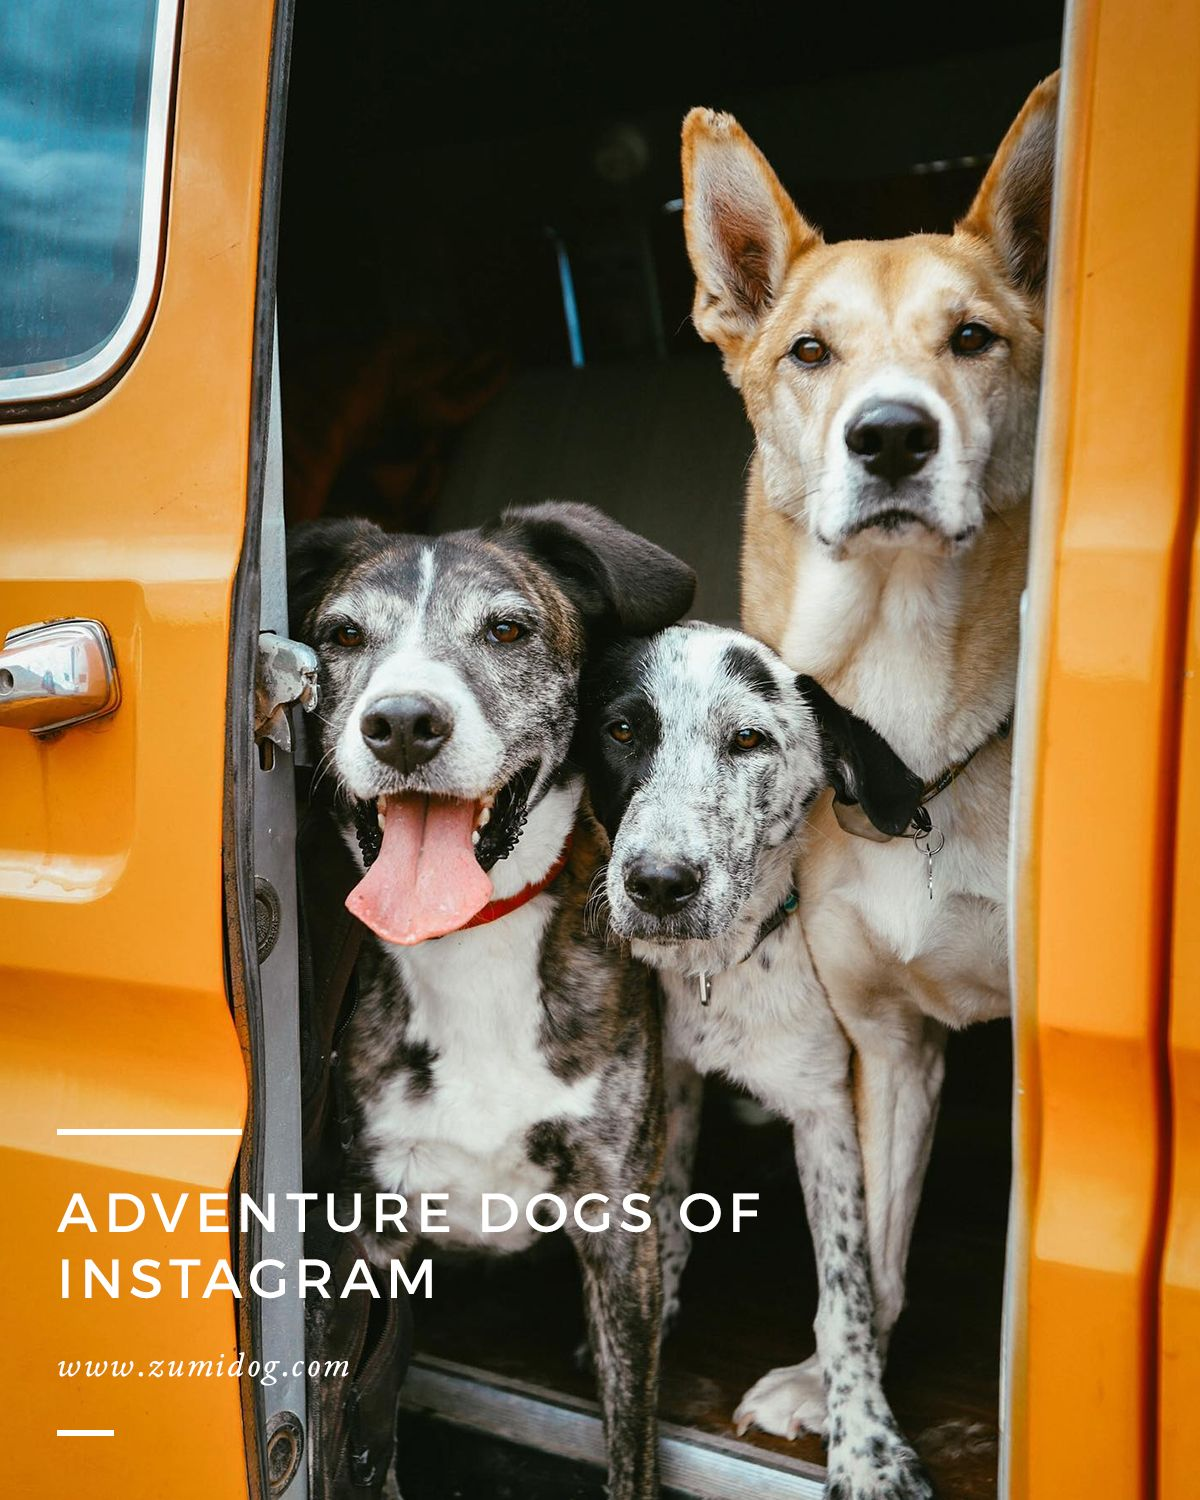 We're all spending a little more time at home these days. So if you're looking for some inspiration until you can get out there again, these adventurous dogs on Instagram have got you covered.  Spend a few minutes scrolling through these accounts to get inspired for your next adventure with your own pup!  #ZUMI #InBetweenTheGo #NeverRoamAlone #Doglead #Dogleash #adventuredog #dogsonadventures #hikingdogsofig #travelwithdogs #explorethewild #takemoreadventures #dogsofinstagram #dogsofinsta